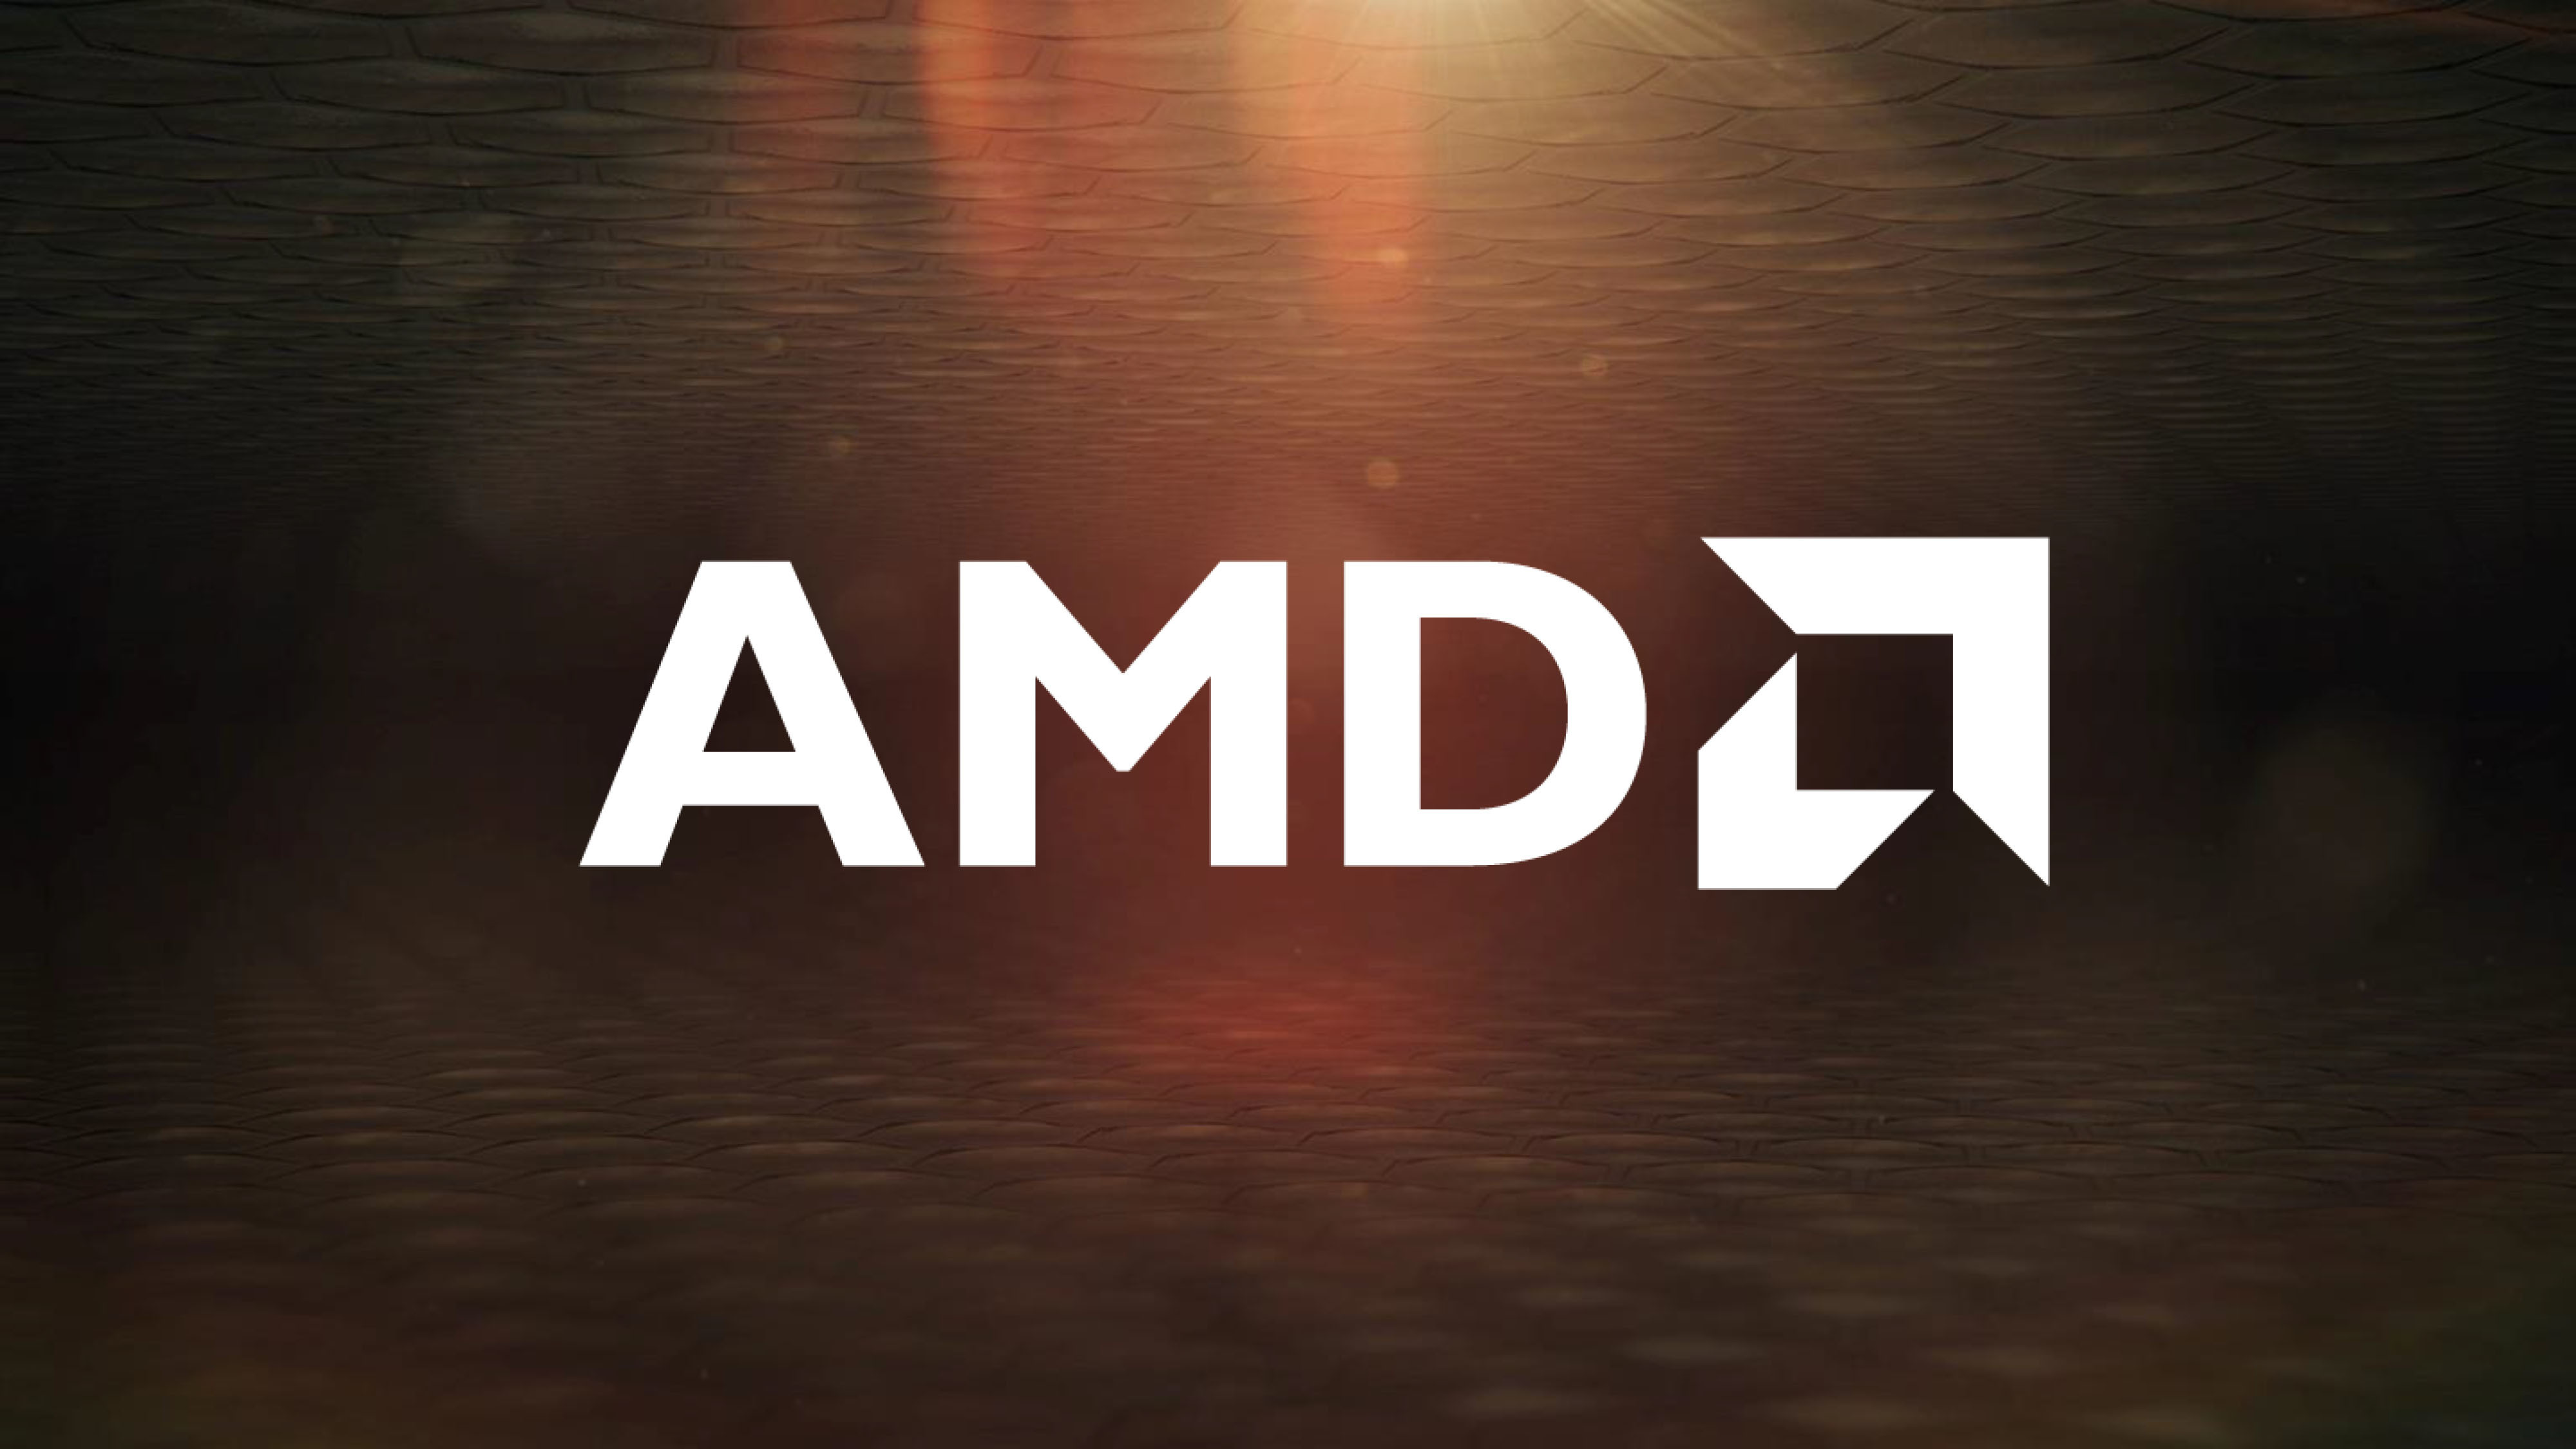 Amd Ryzen 5 Cpus Announced From 169 How To Tune A Ryzen System And - Reviews show consensus in that ryzen is a powerhouse of a processor when it comes to multimedia and encoding workloads mostly crushing intel s competition